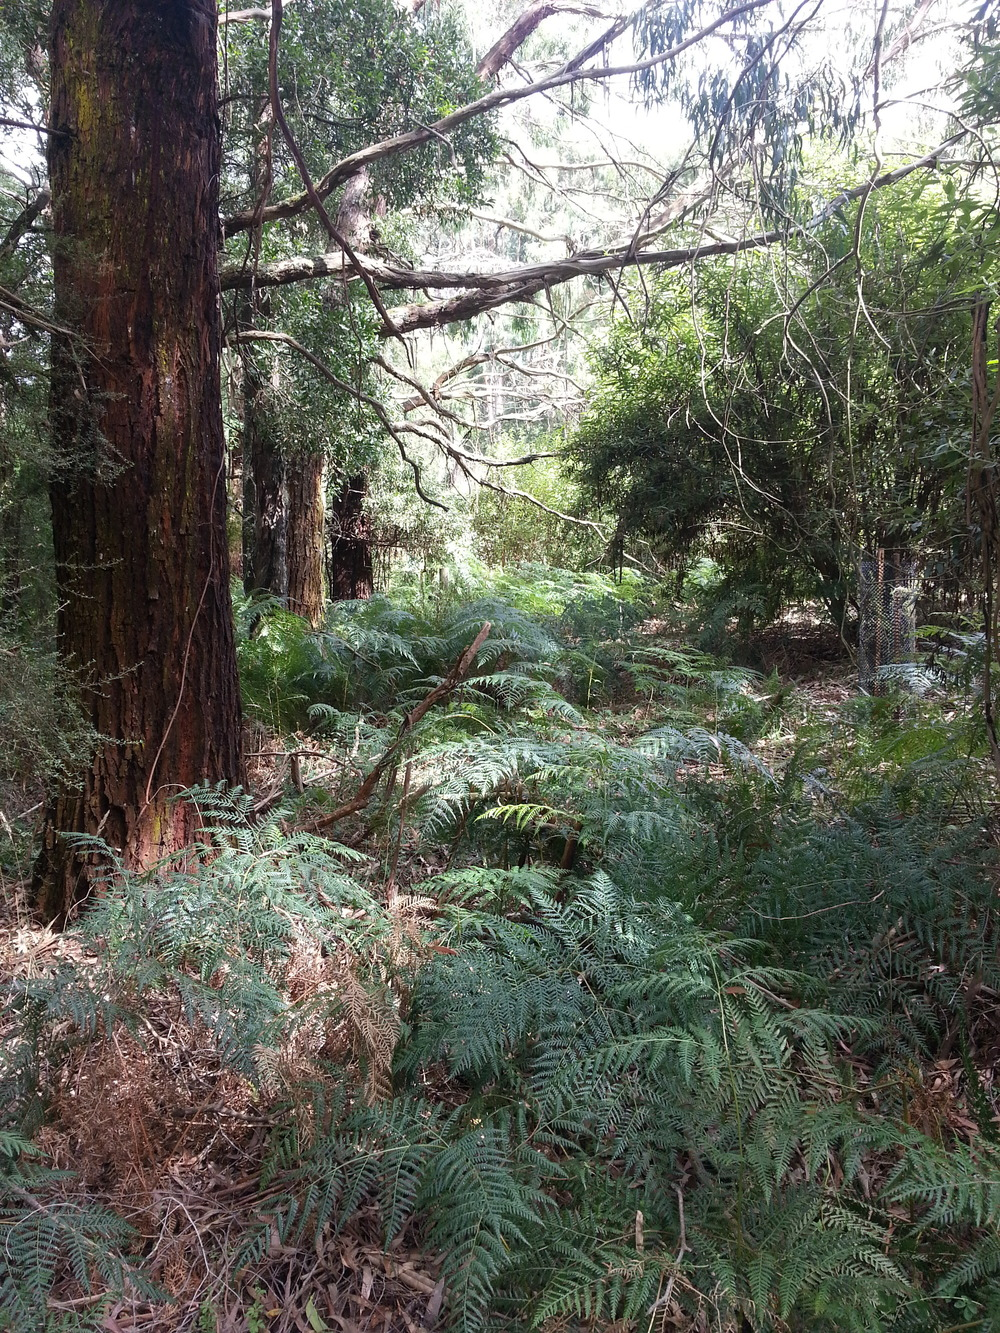 The land at Endeavour Fern Gully, looking almost exactly as it would have during the time of the Bunurong people